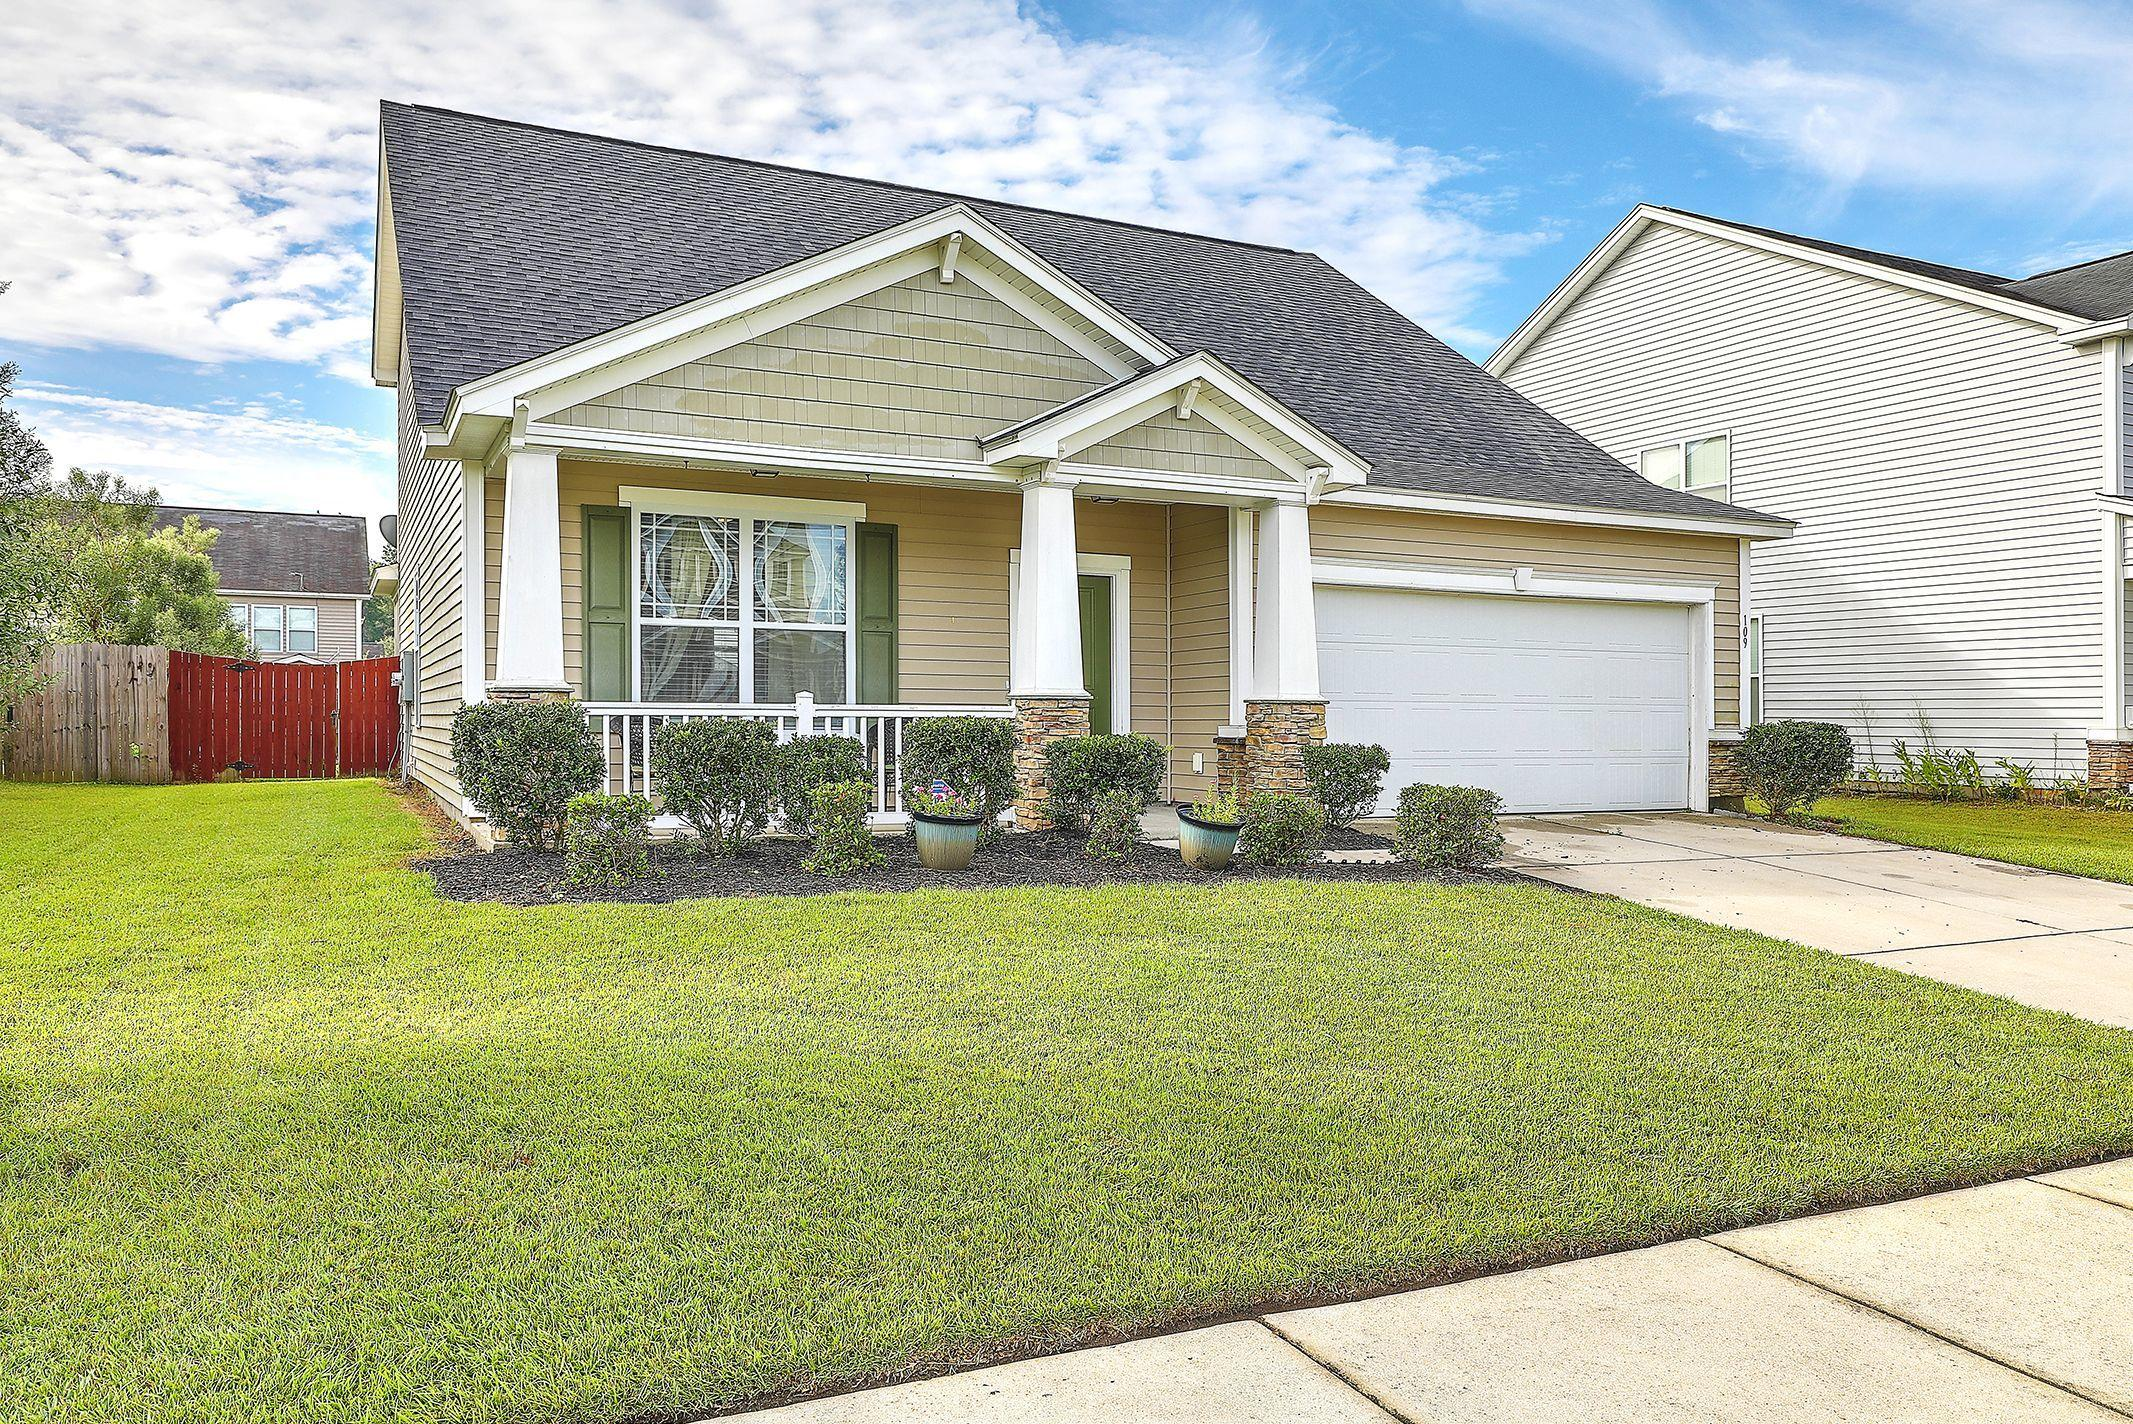 109 Tin Can Alley Summerville, SC 29483